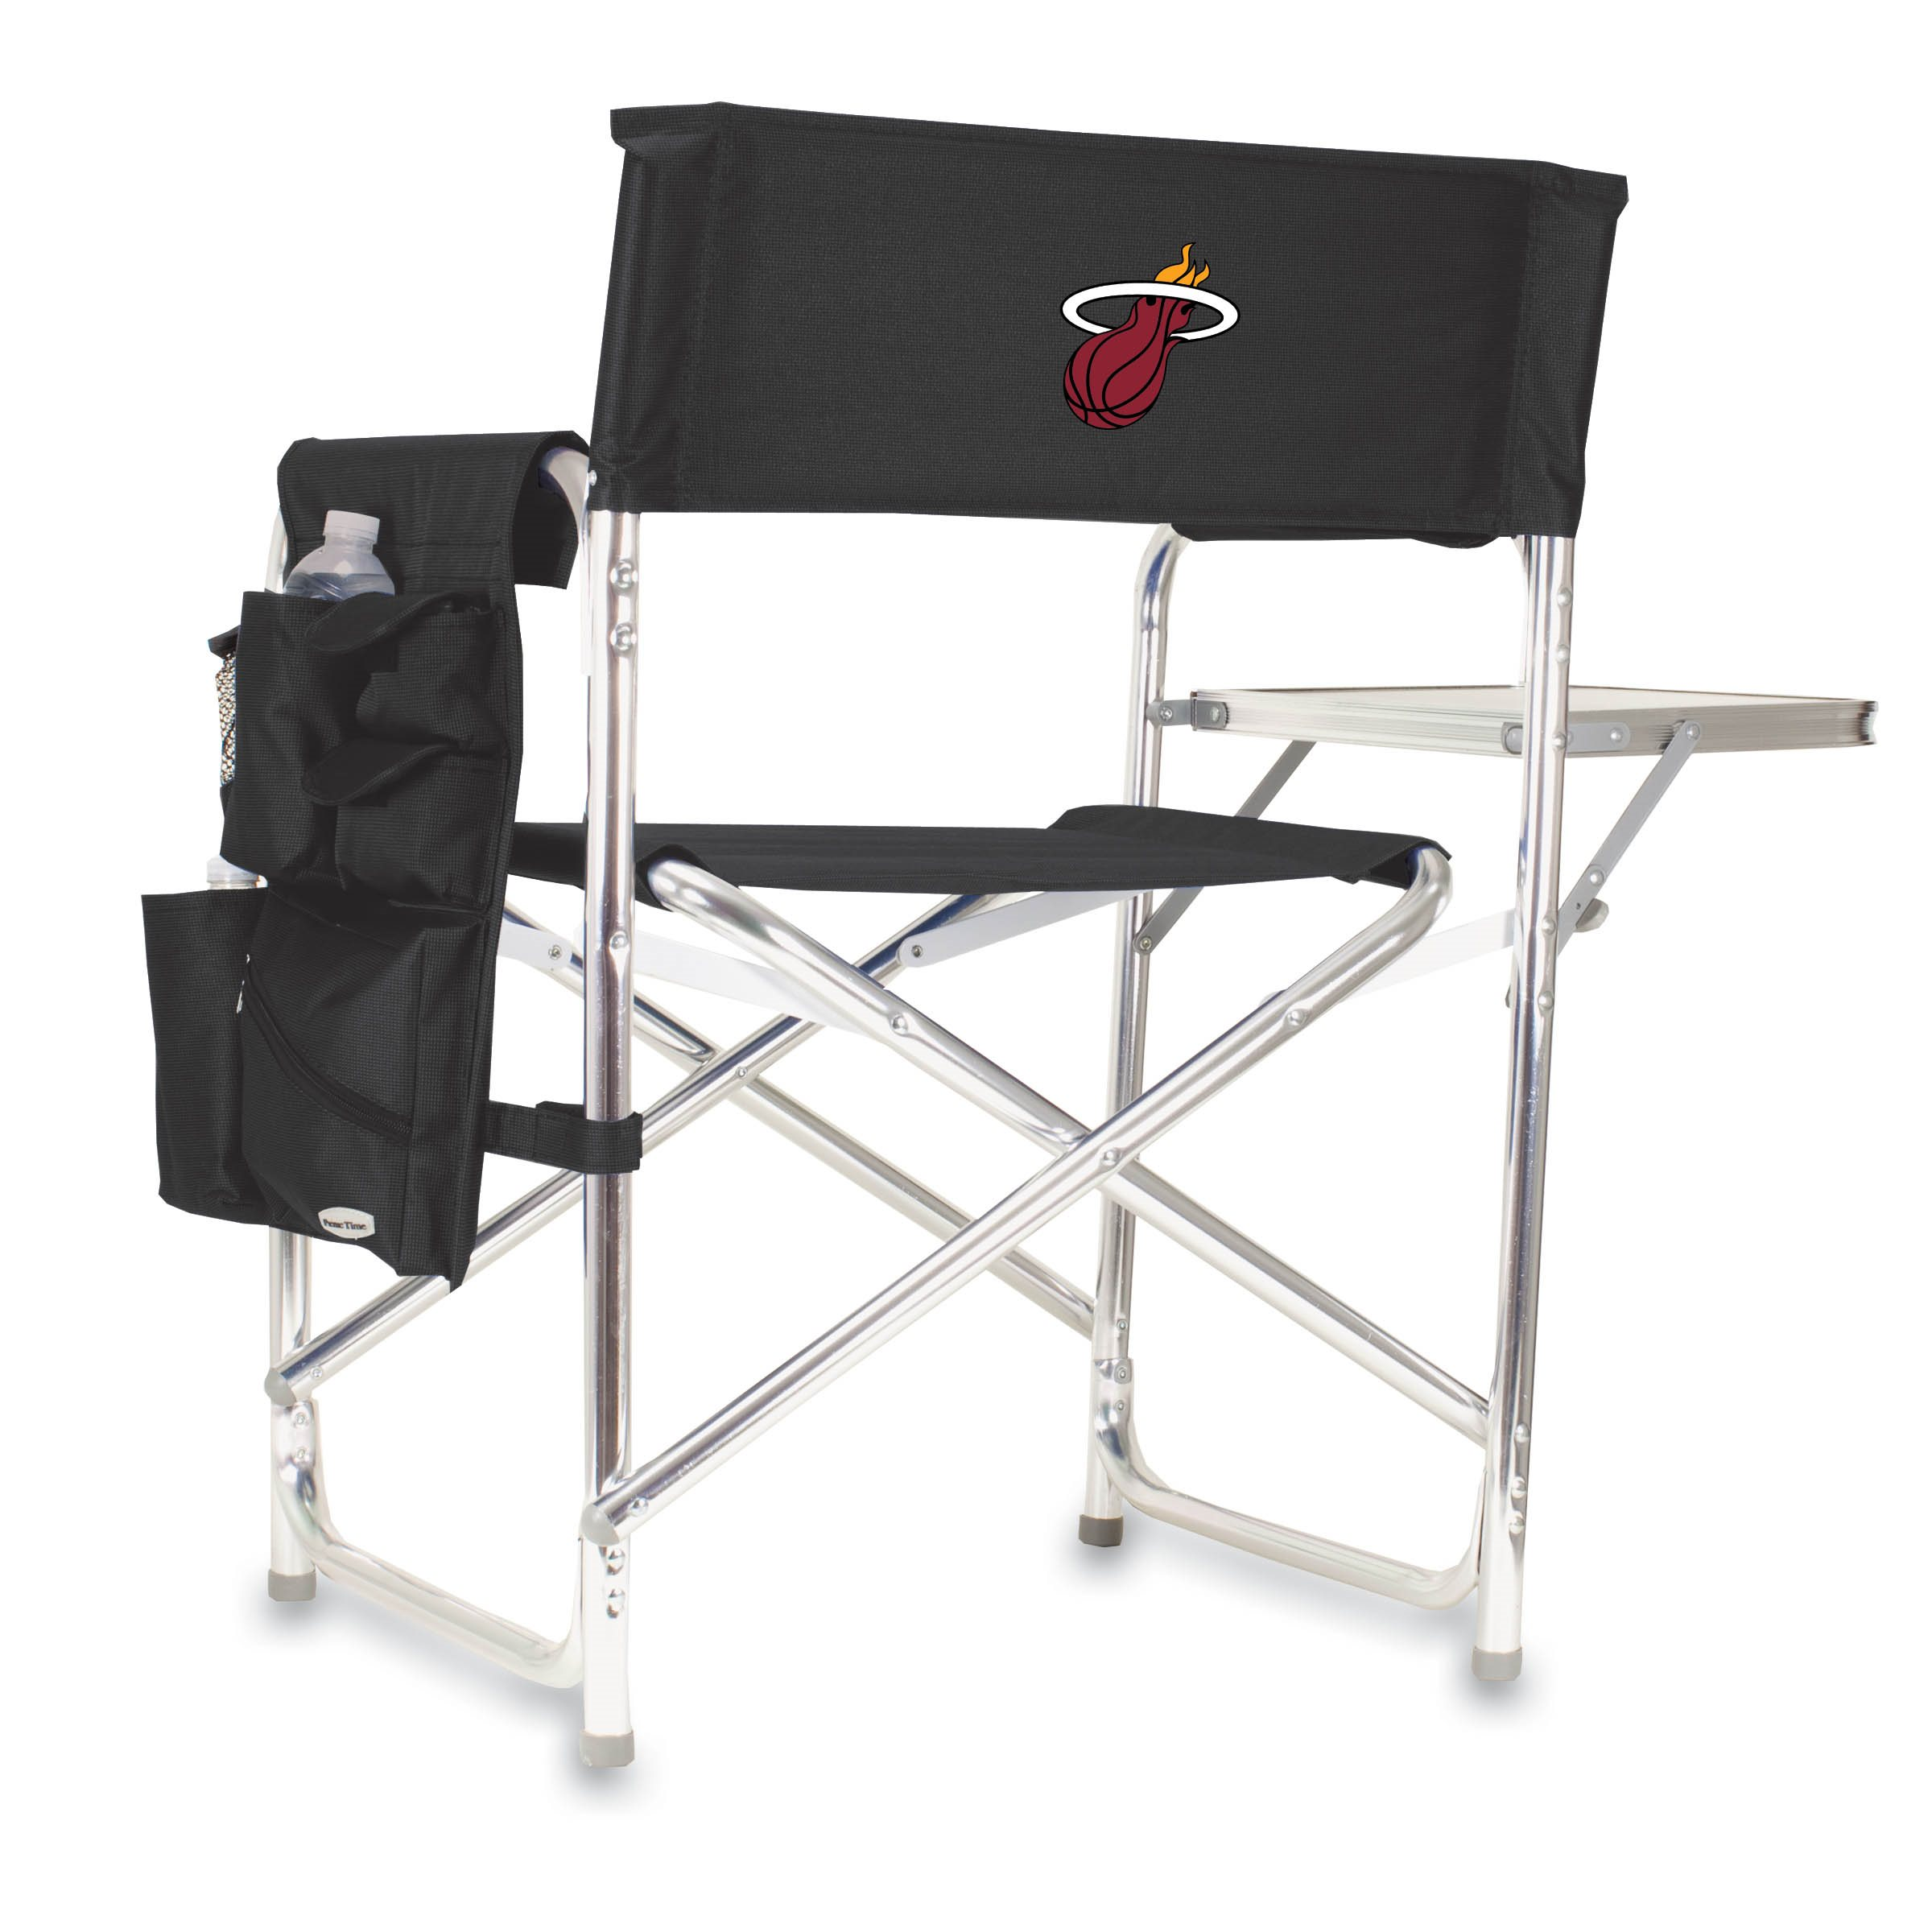 Picnic Time Nba Sports Chair Miami Heat